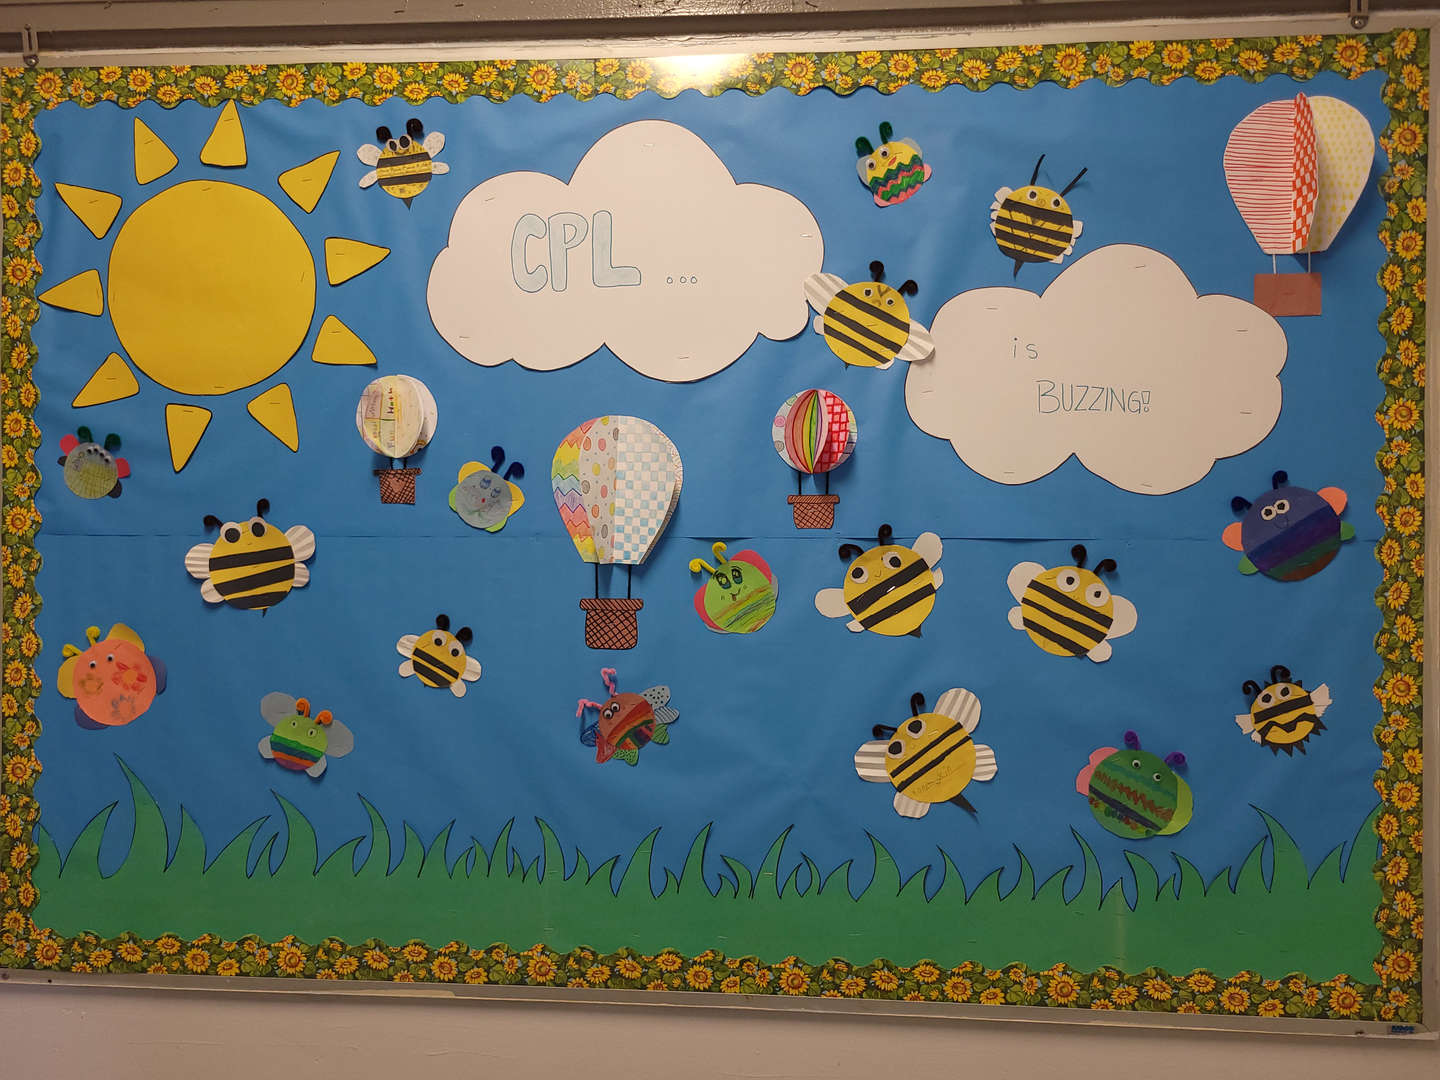 Art work created by the students showcasing butterflies, bees and flowers.